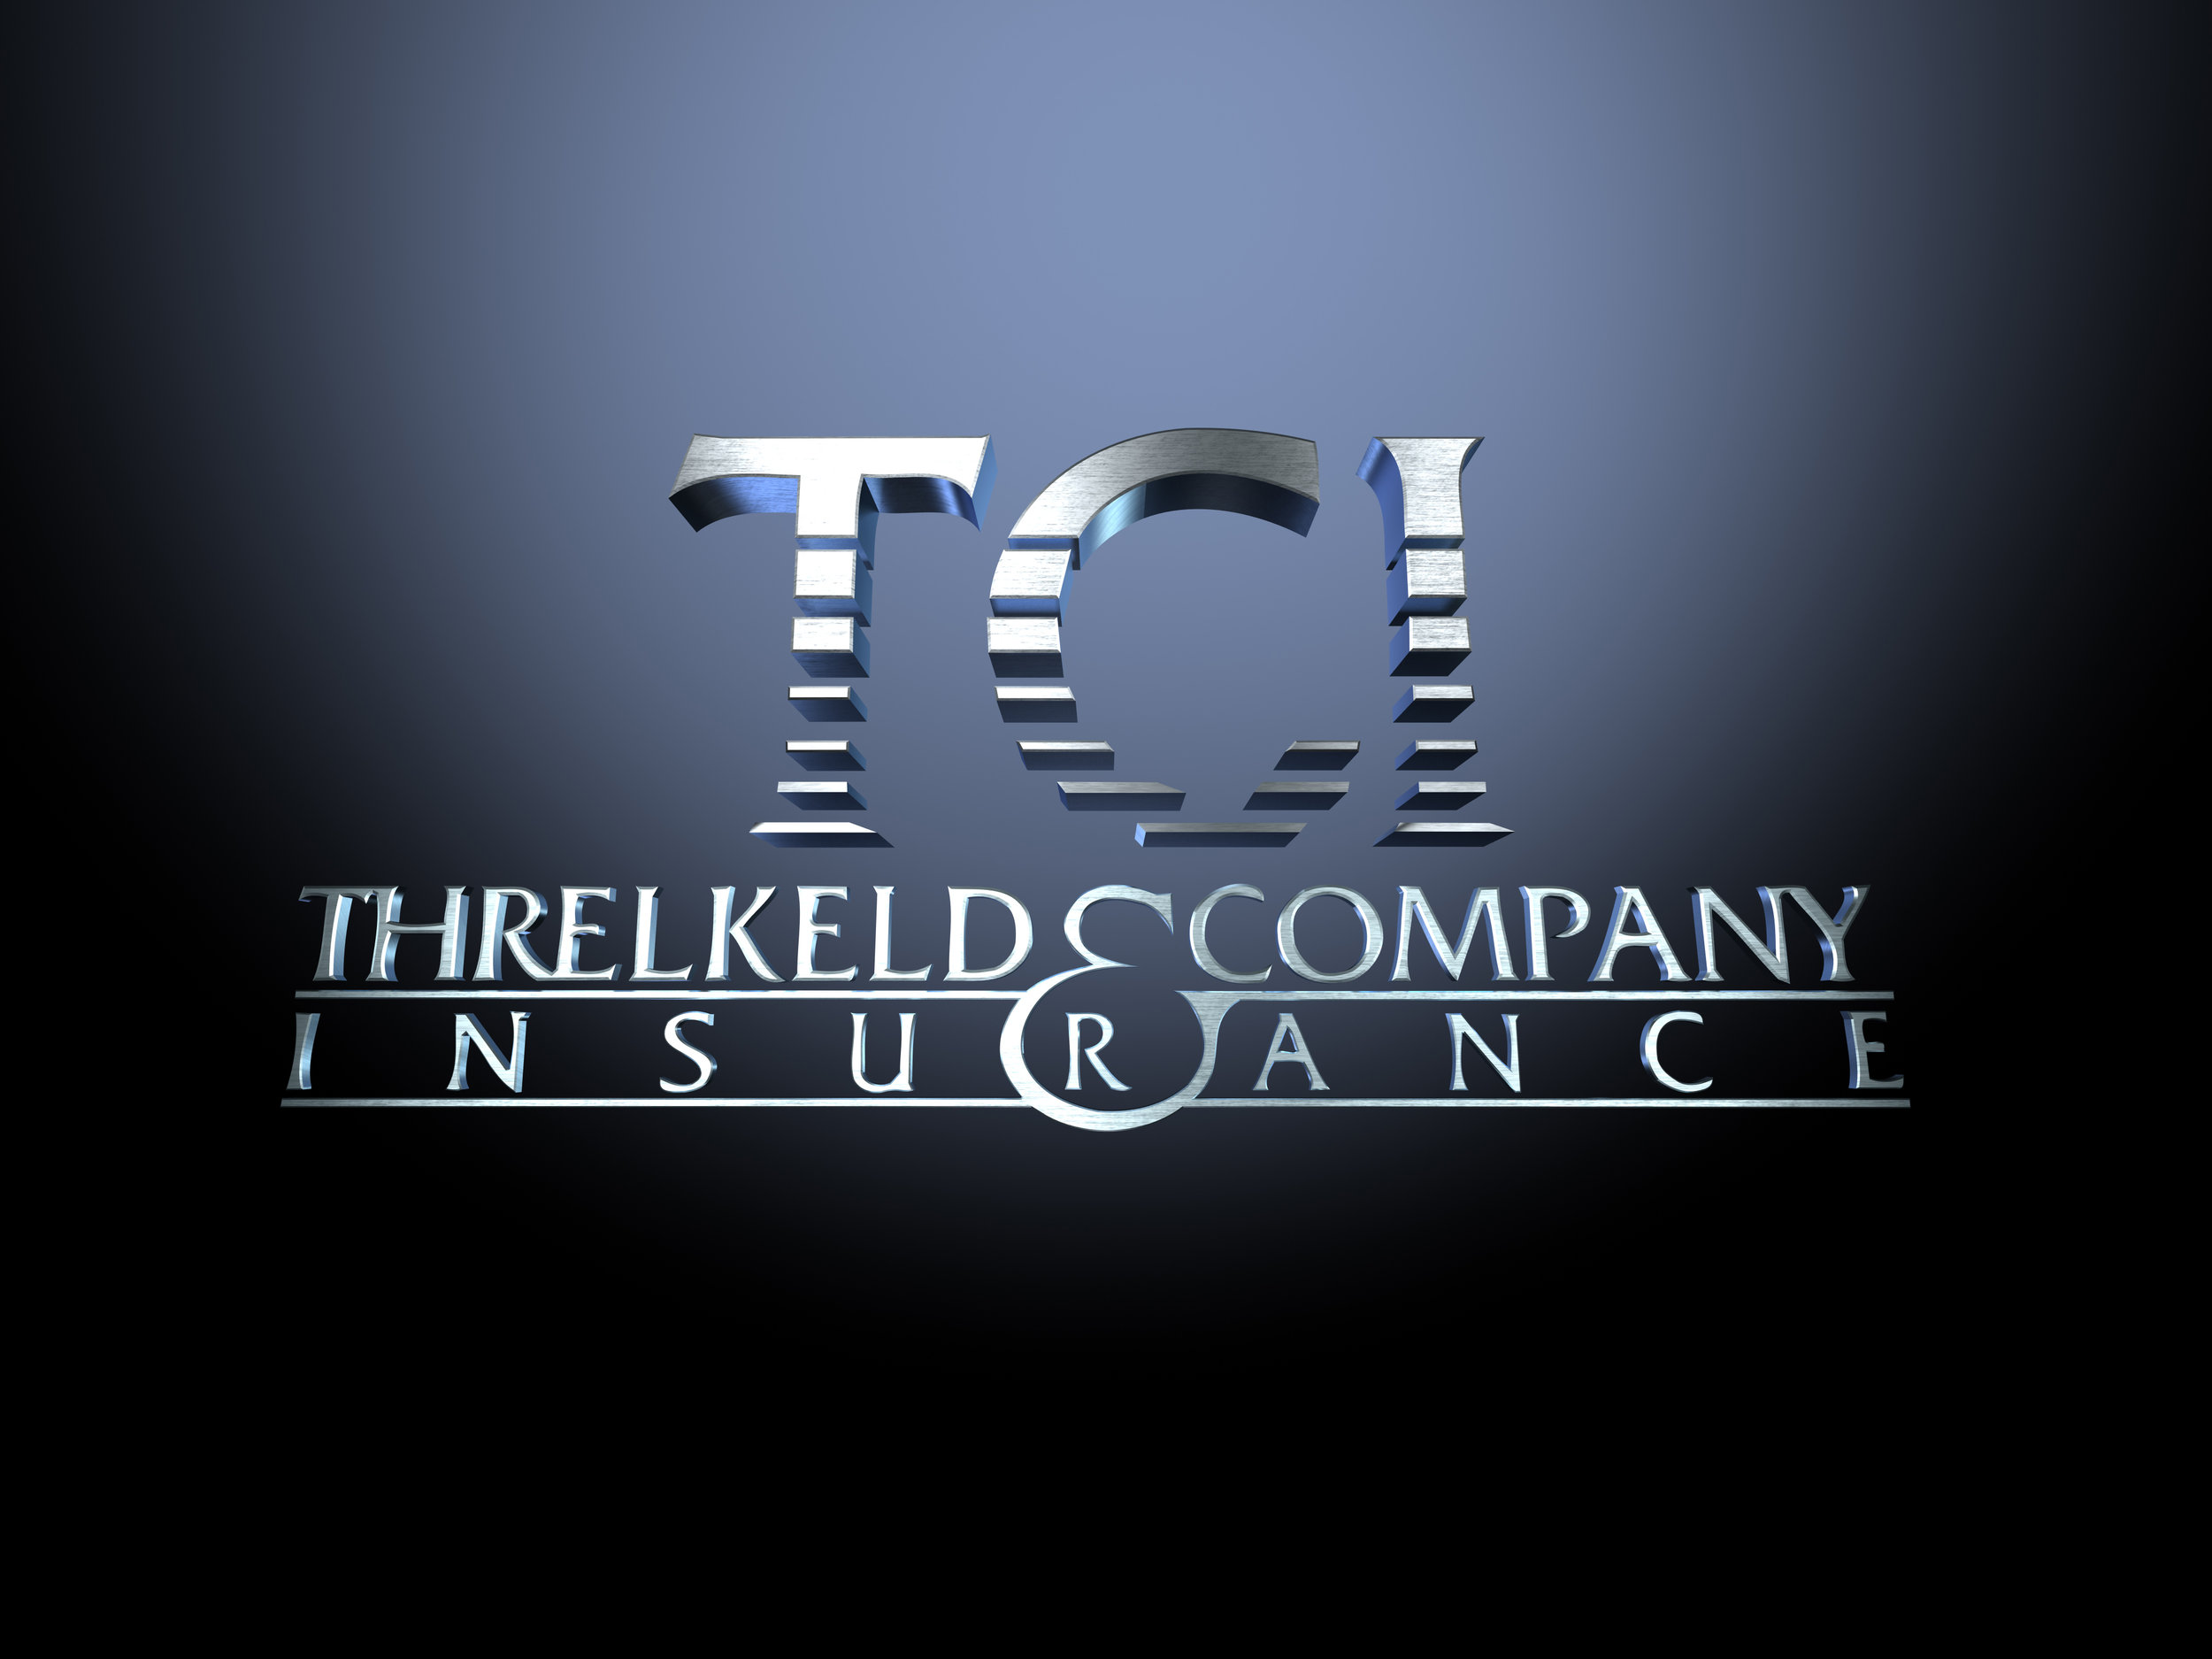 - THRELKELD COMPANY INSURANCEPositioning a brand in a saturated business sector